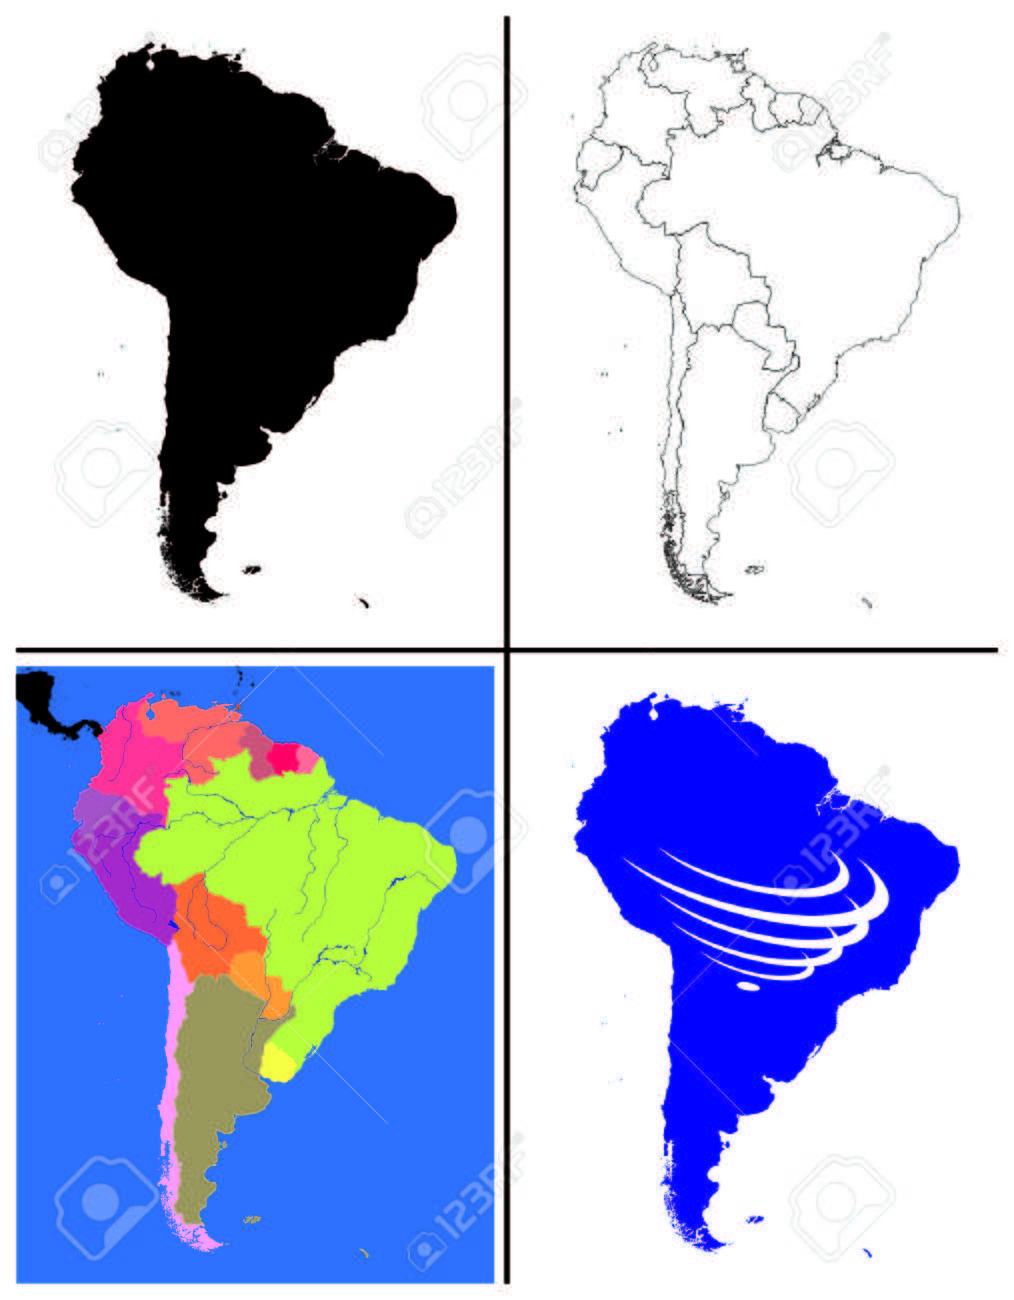 South America Maps Collection Silhouette Political Line Art